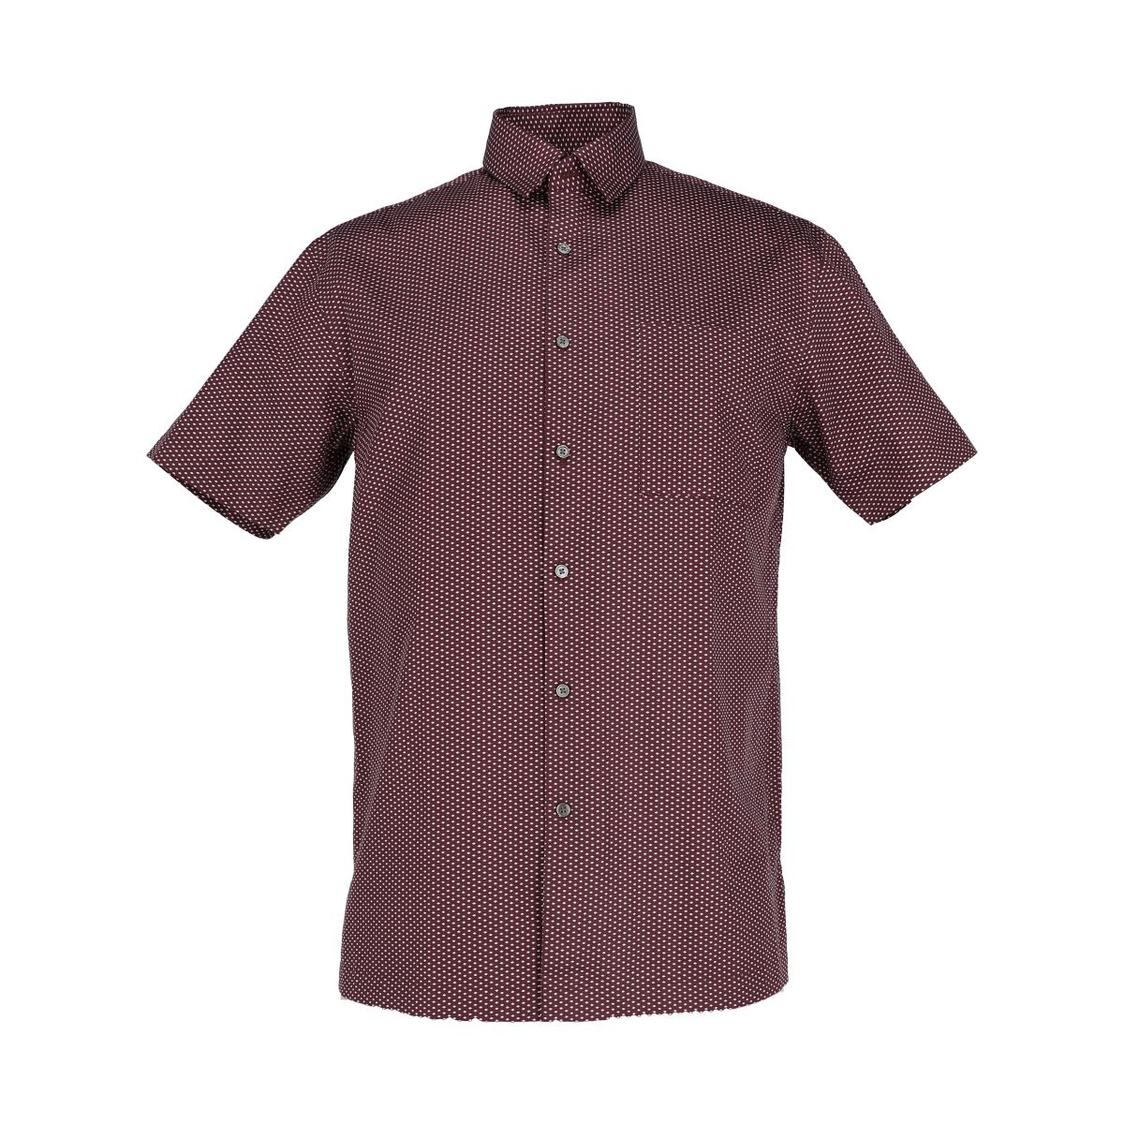 Mens Short Sleeve Printed  Slim Fit Shirt